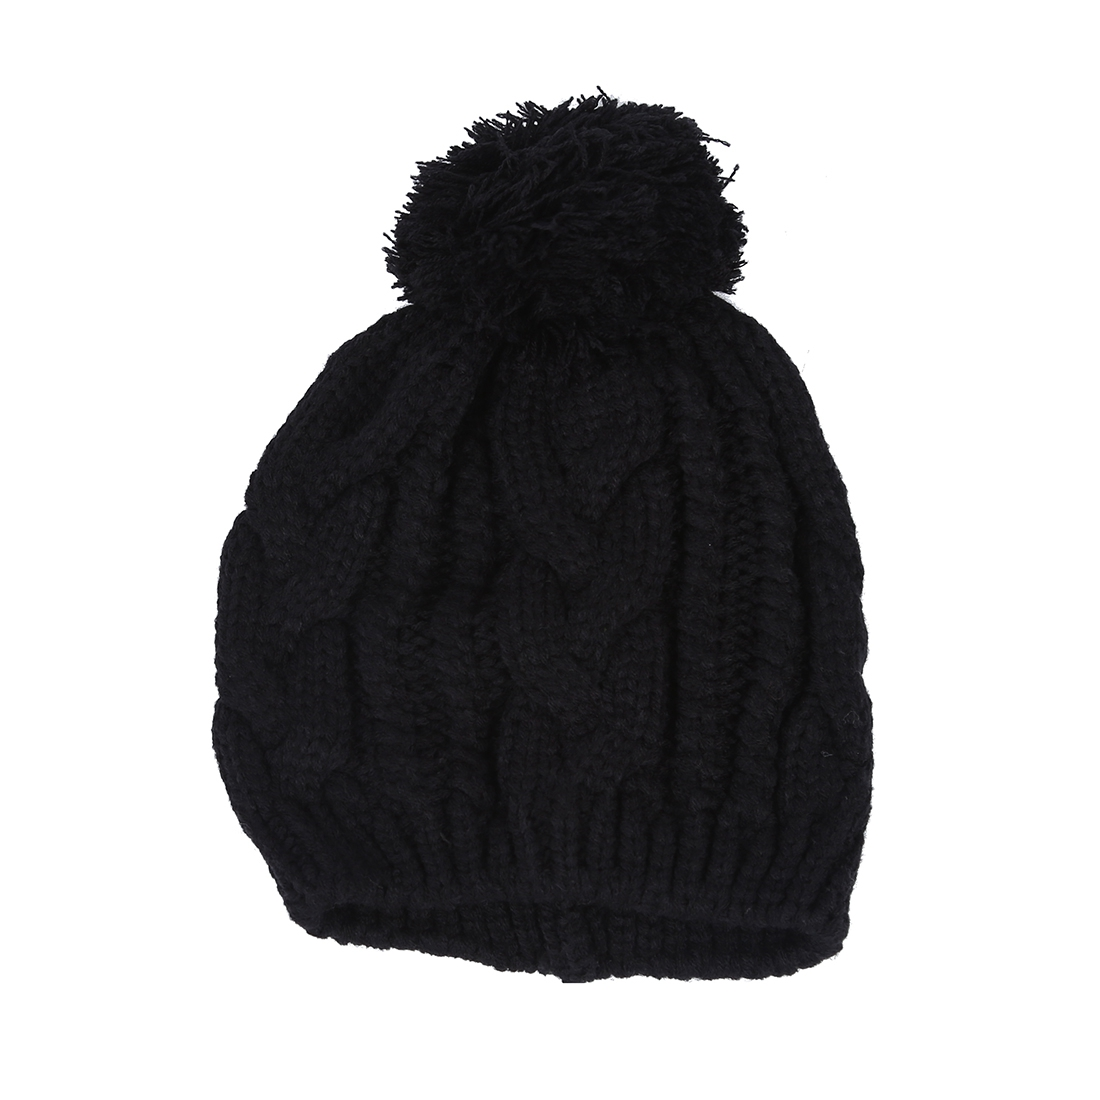 Warm Winter Unisex Men Women Knit Bobble Beanie Baggy Hat - AS eBay